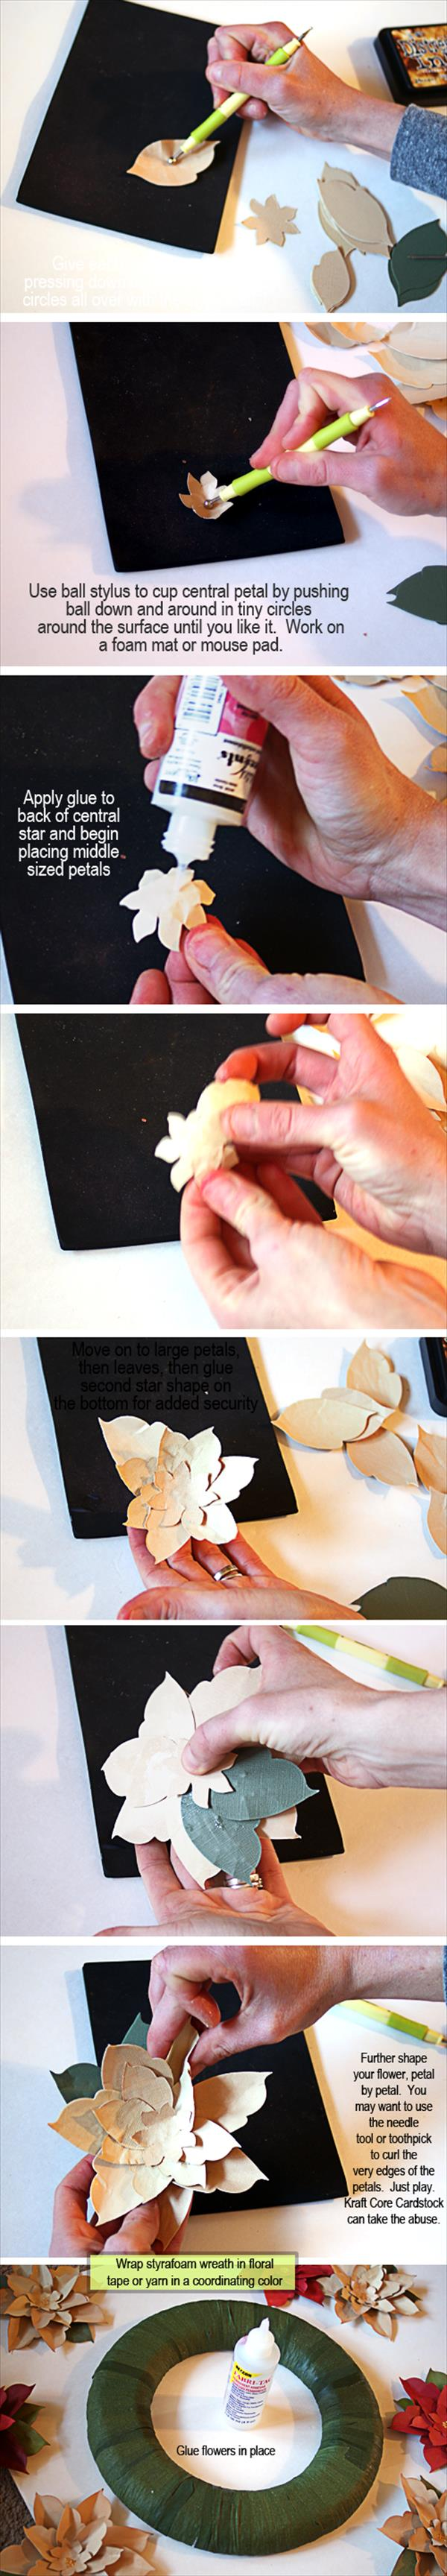 diy duct tape poinsettia gift topper instructions